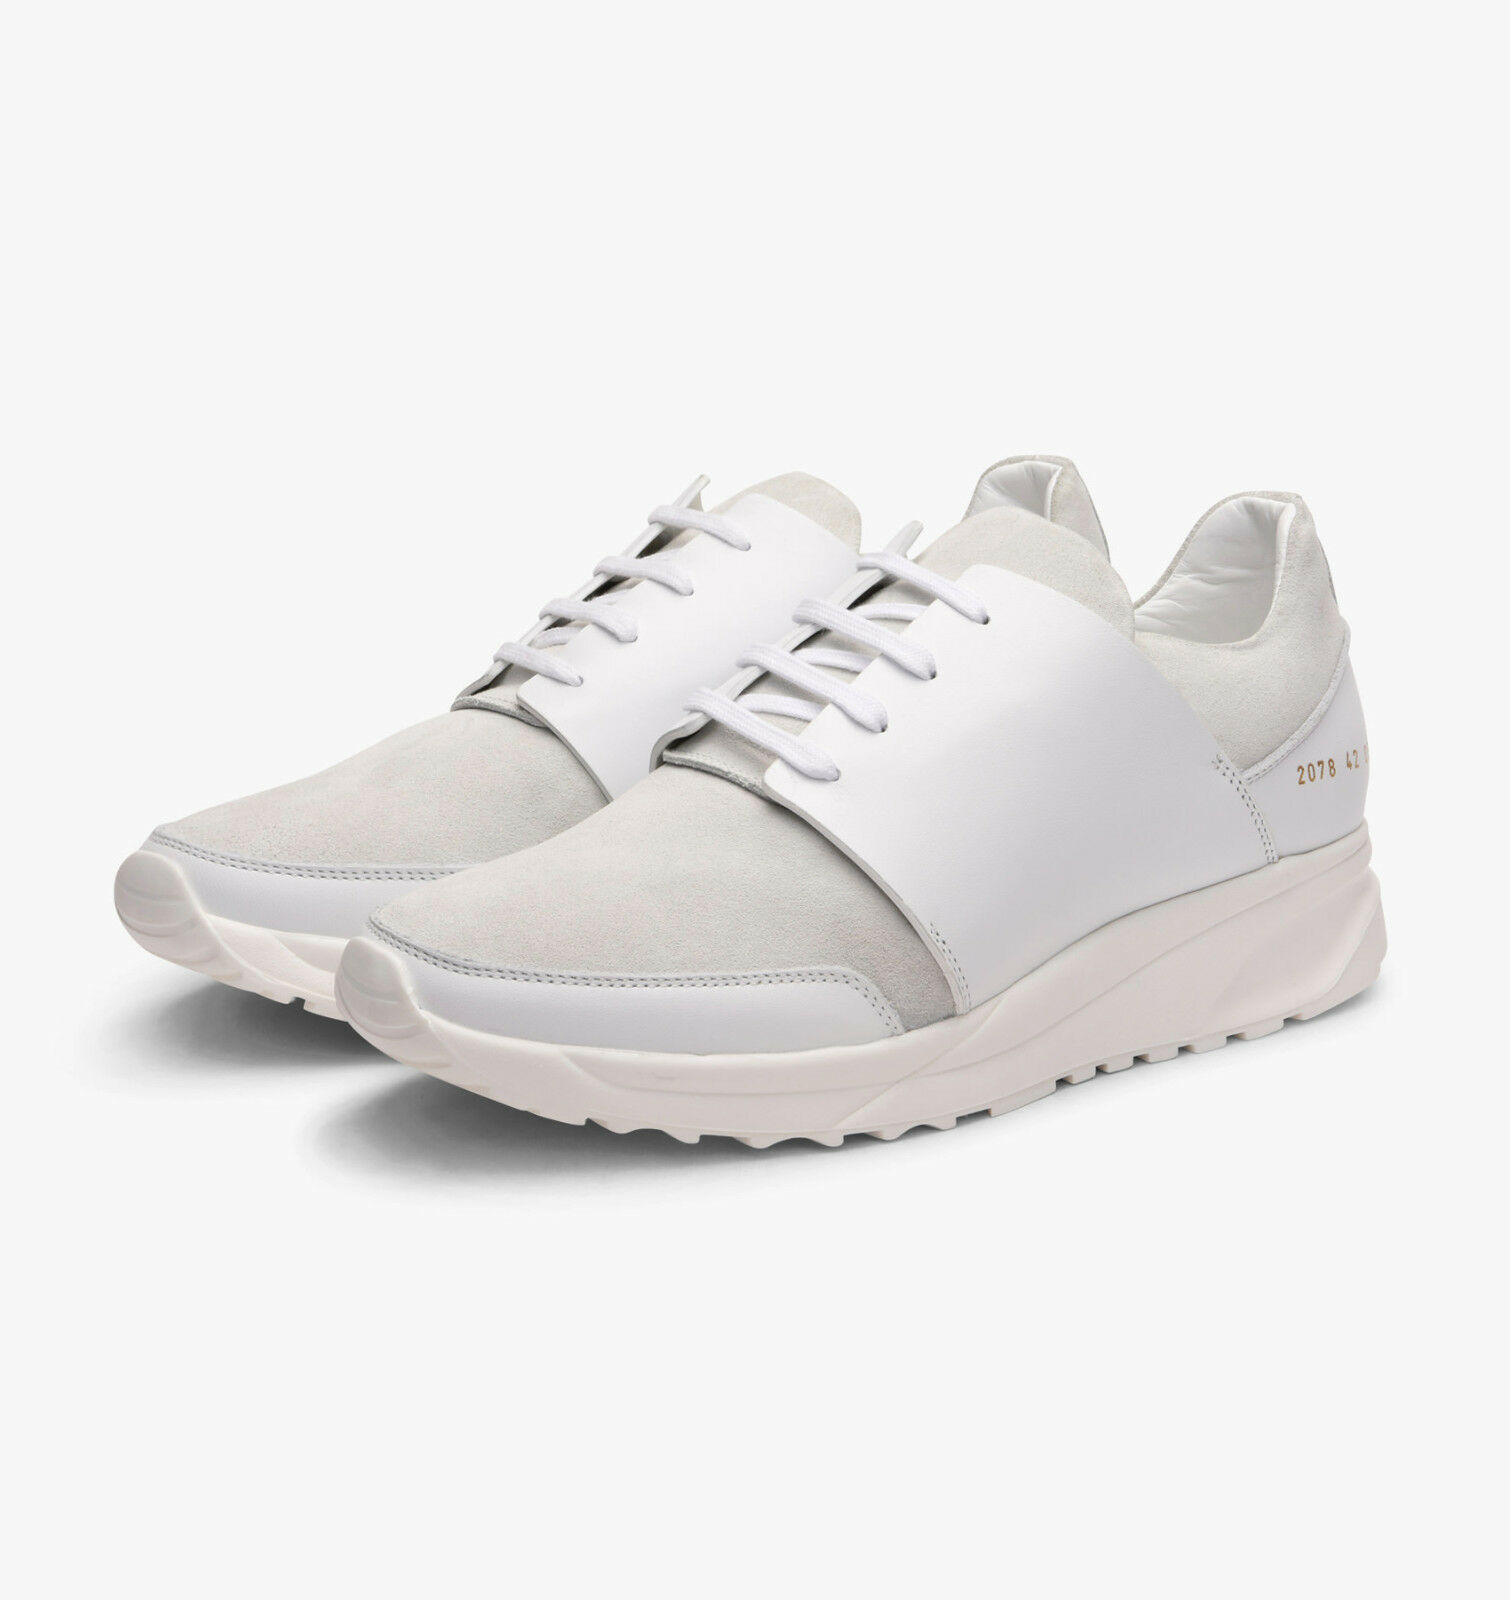 Common Projects Talla Track Sneakers in Blanco, Talla Projects 42 & 43 - BNWB,  395 27c9e9